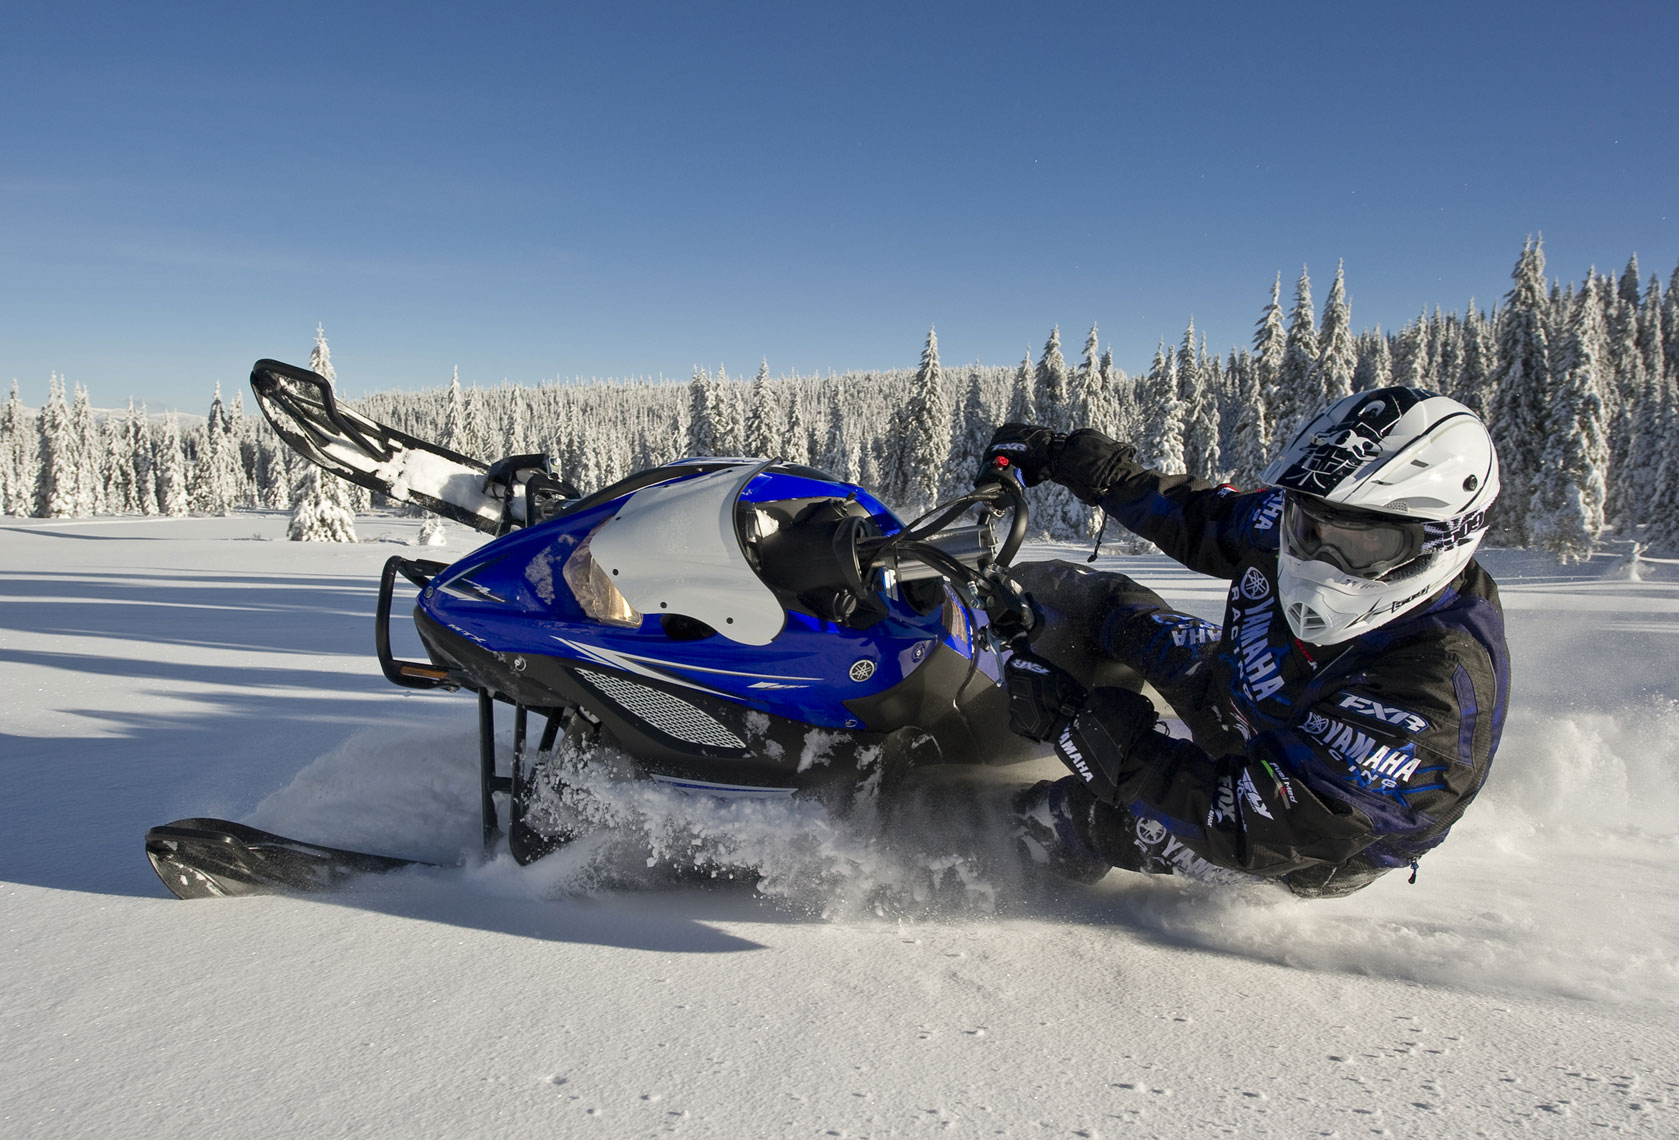 Snowmobile-Photography-by-Kort-Duce-107